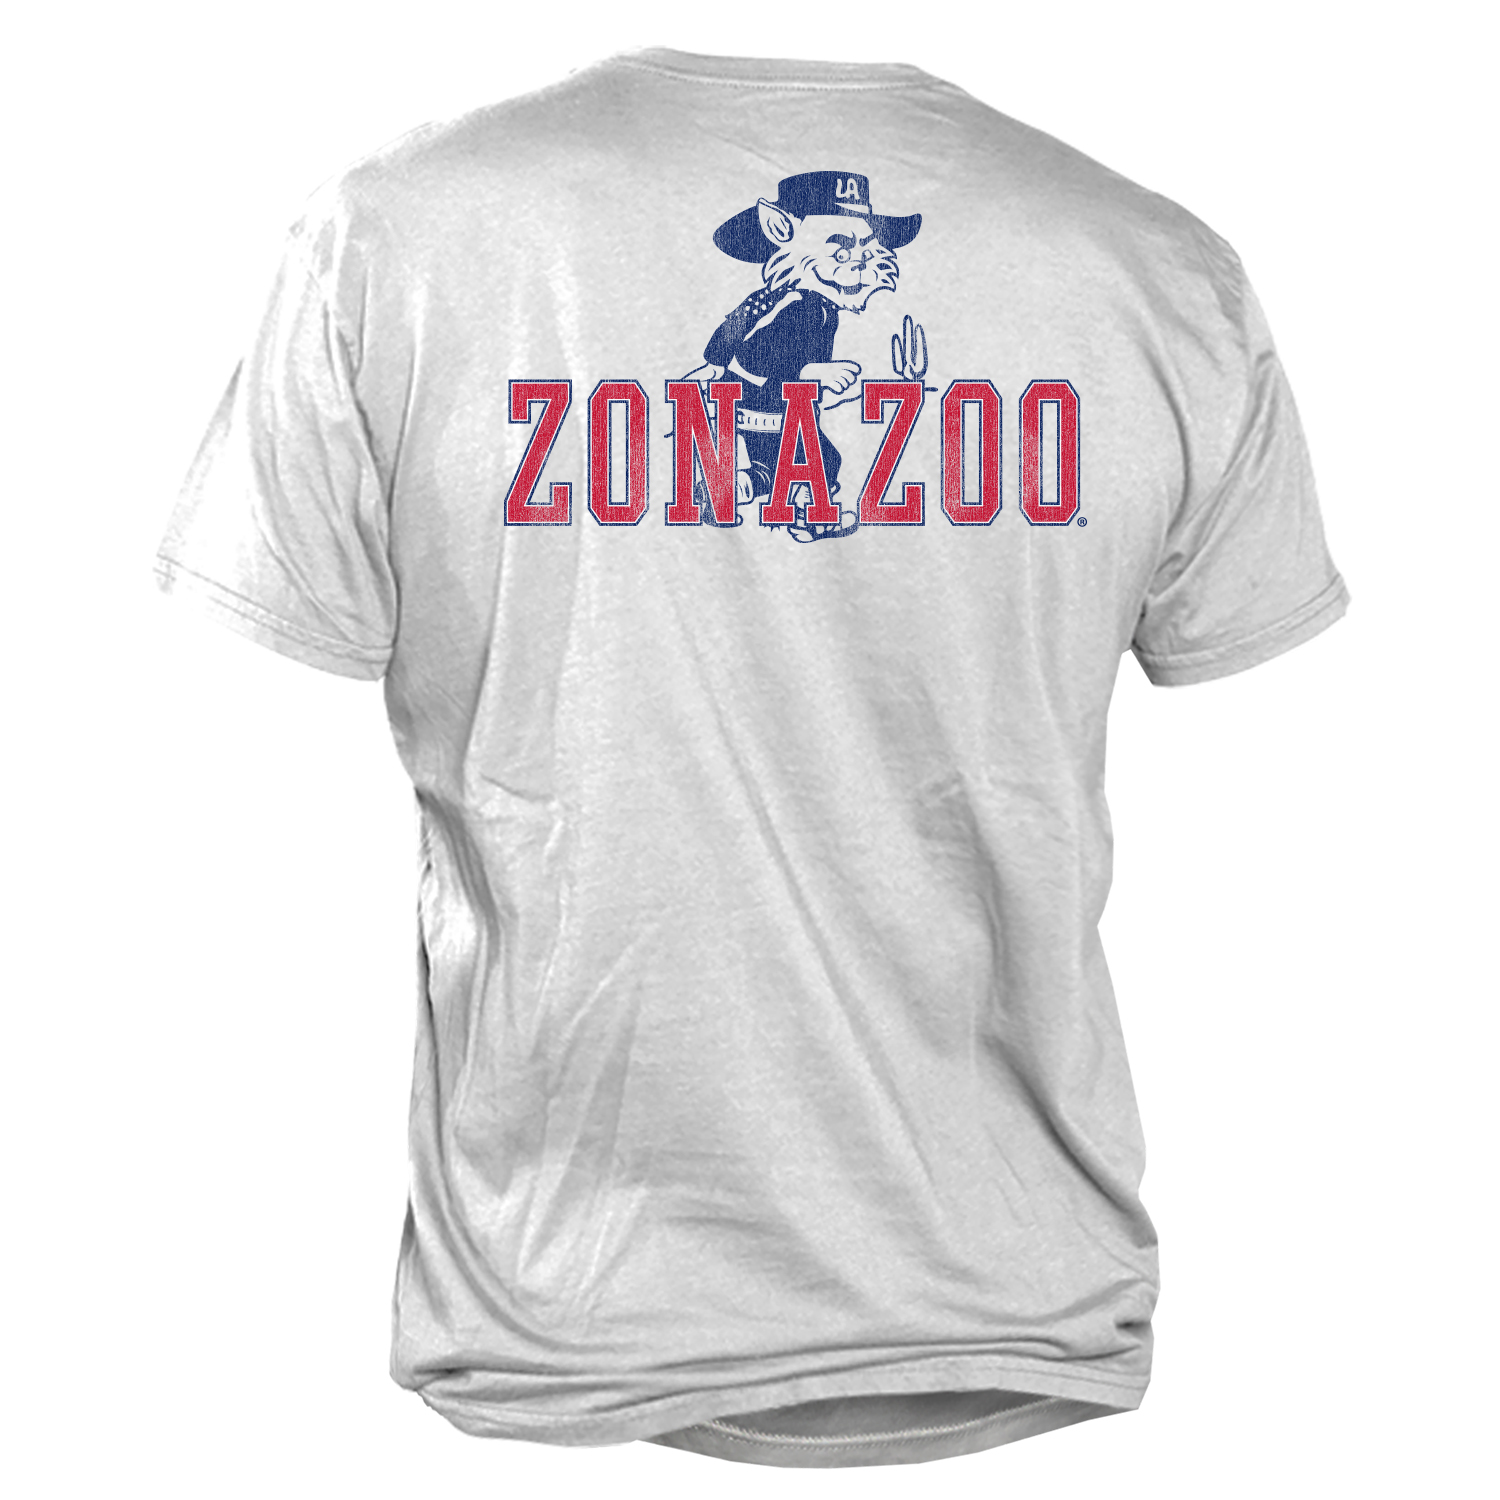 Image For Retro Brand: Arizona Vintage Wilbur Zona Zoo Pocket Tee